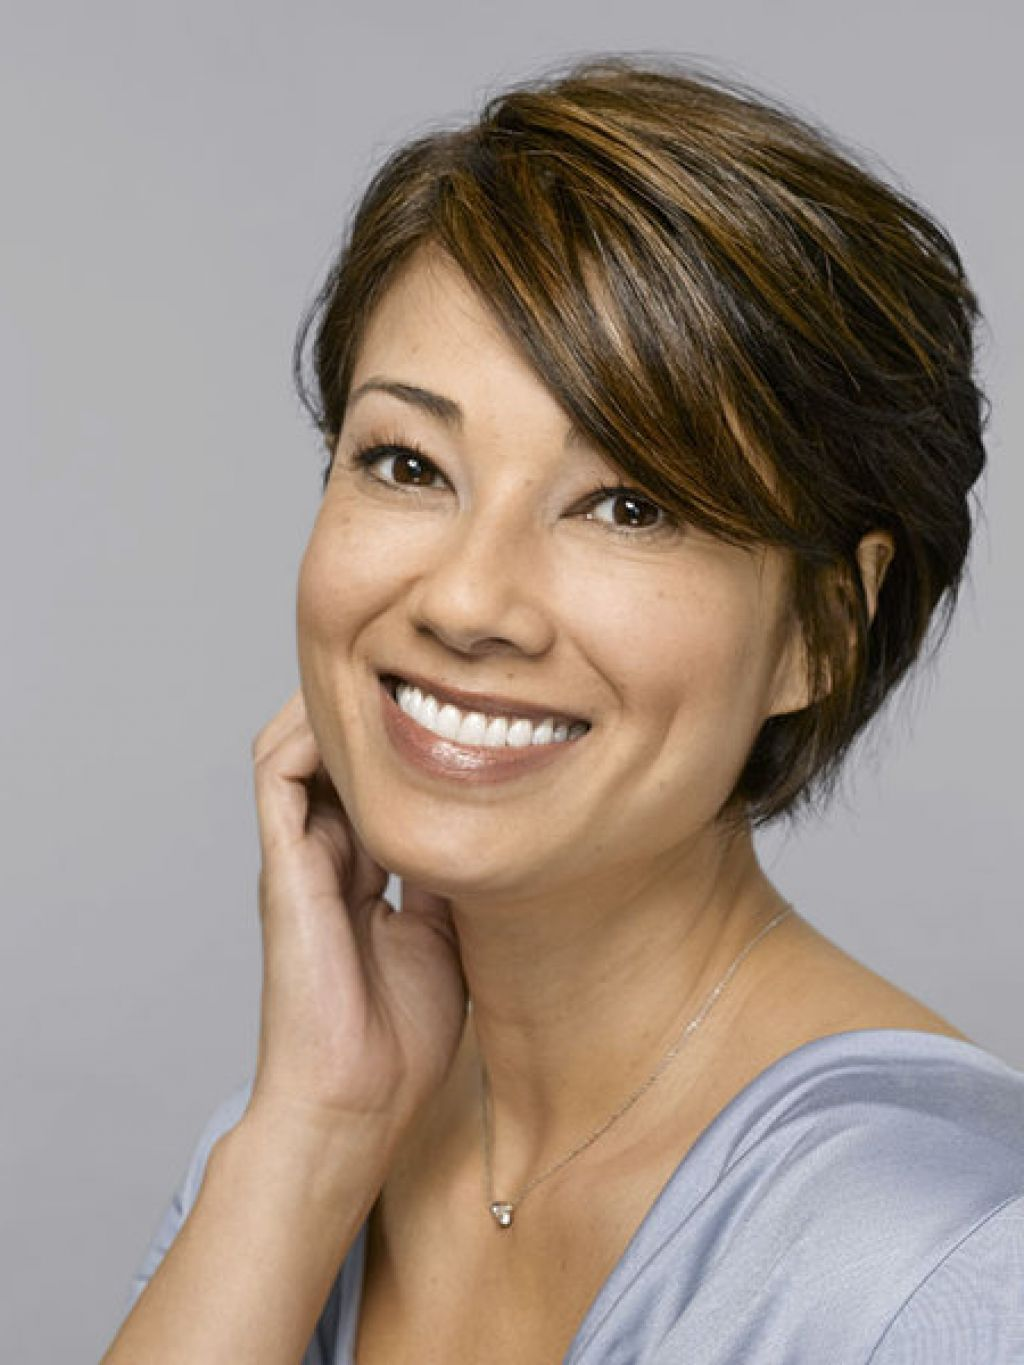 haircuts for women over 50 - google search   short hair cuts